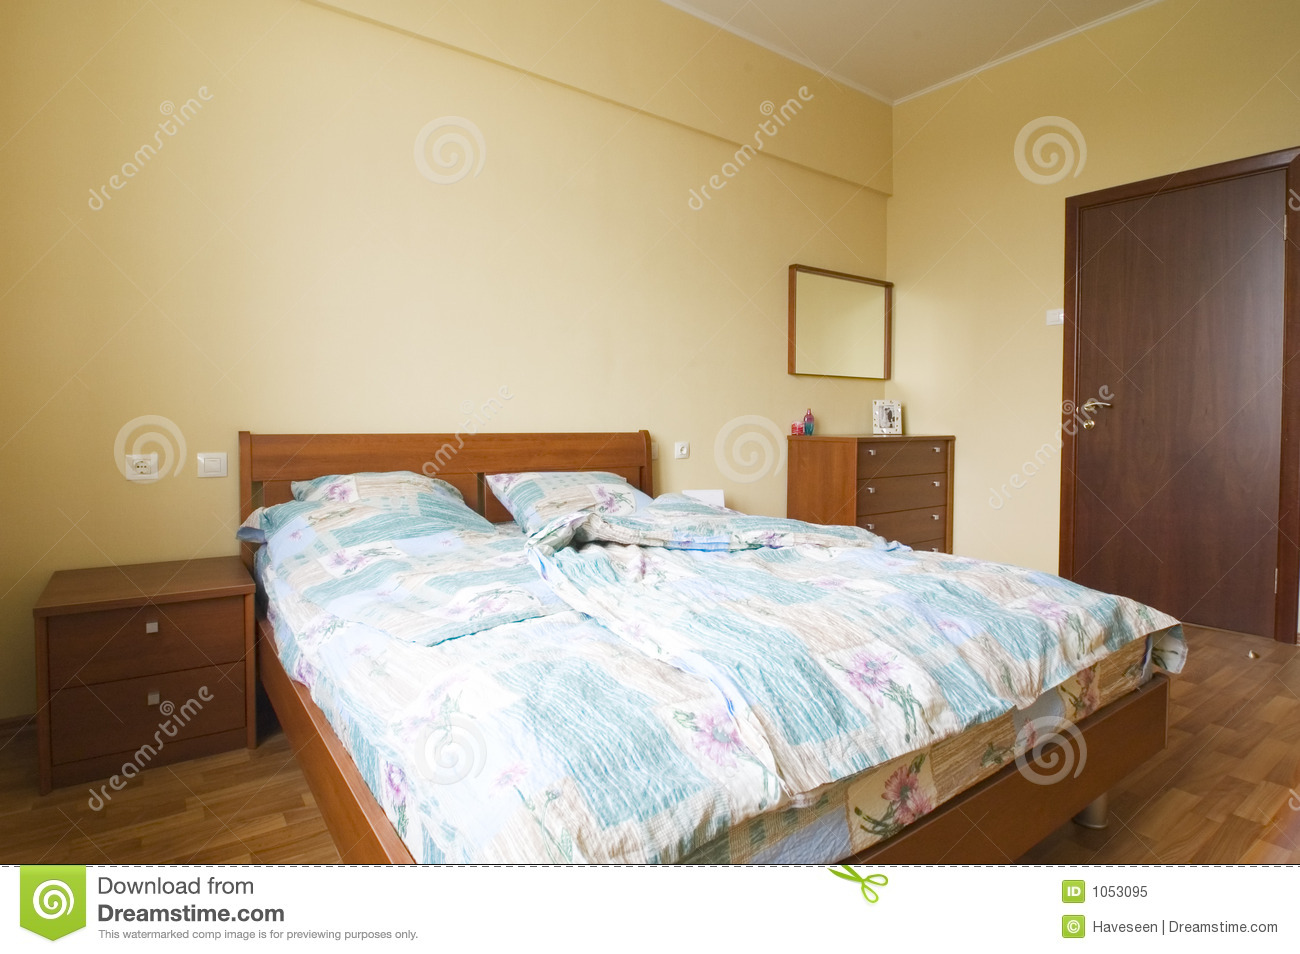 Bedroom interior royalty free stock photo image 1053095 - Bed room photo ...